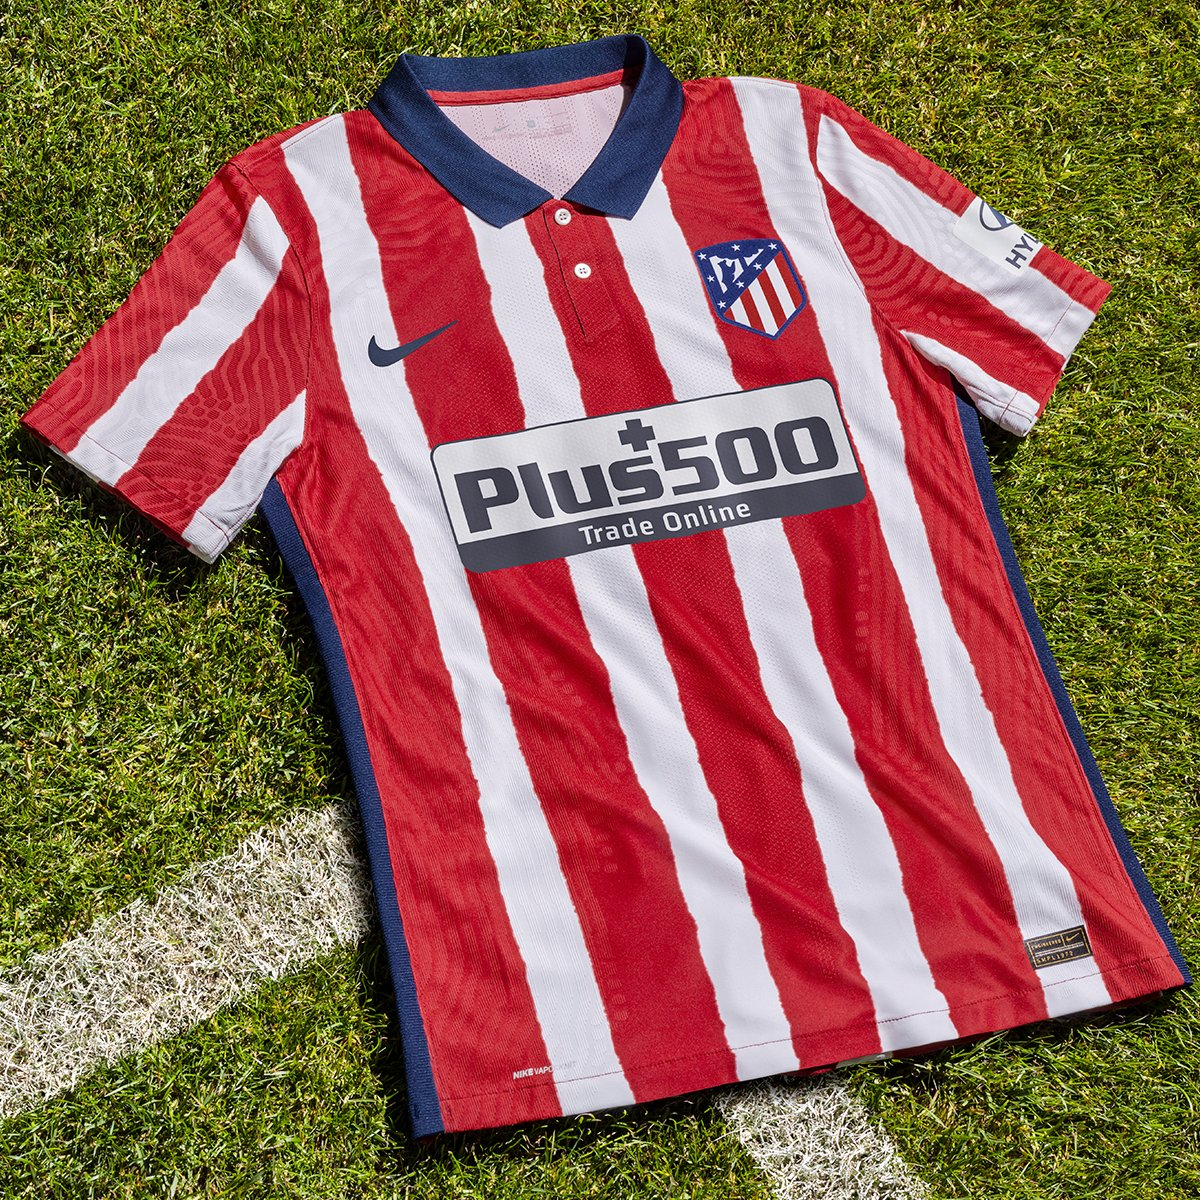 Looks a very nice kit! 👌  More clubs going for those uneven stripes... Love the detail in the sleeve.  #AtleticoMadrid #KitLaunch #Kit #FootballKit https://t.co/HQIS8vSHDh